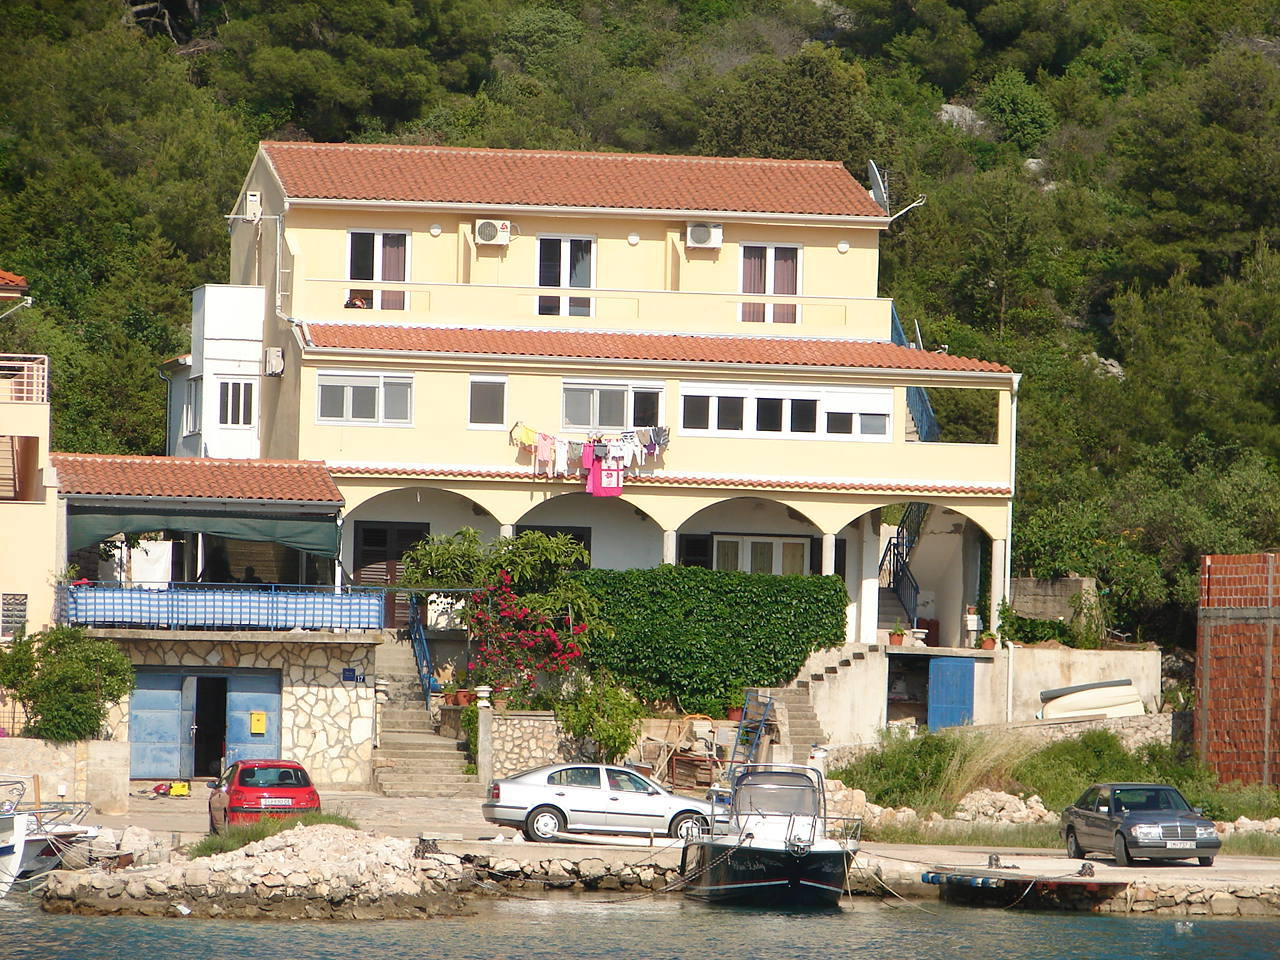 2577 - Tisno - Apartments Croatia